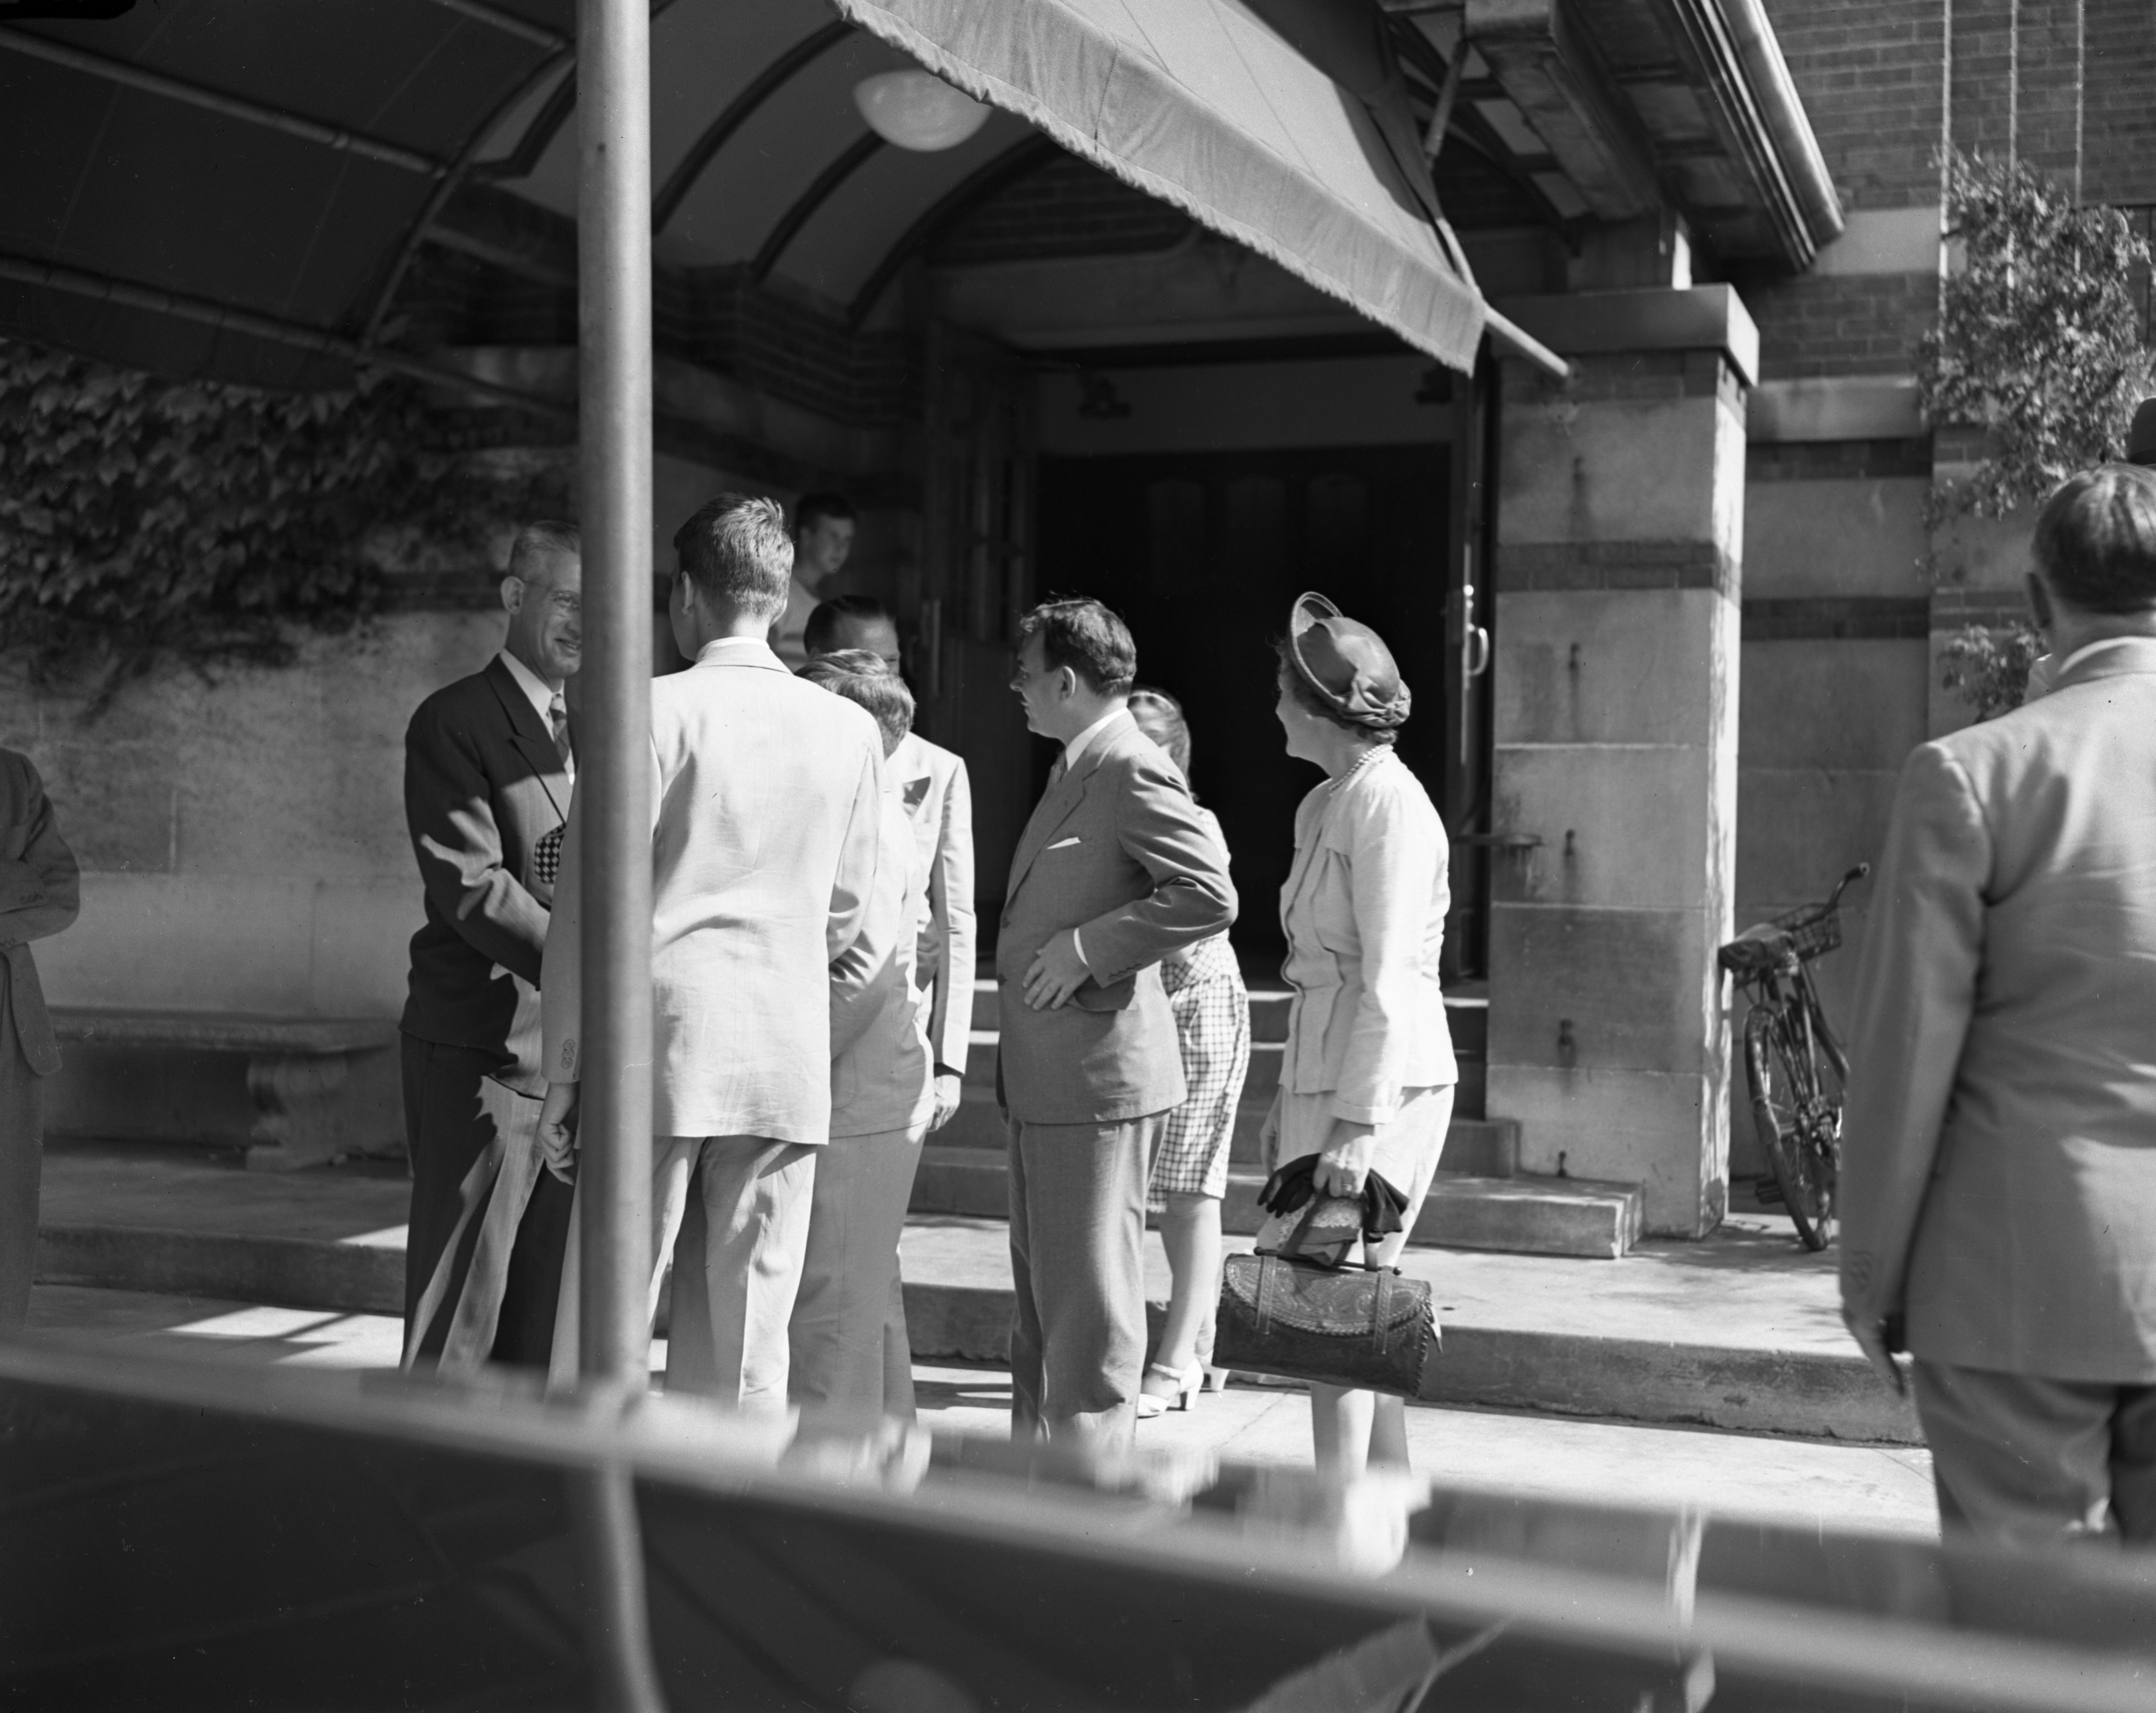 Gov. Thomas E. Dewey and Family Greeted at Michigan Union, July 1947 image